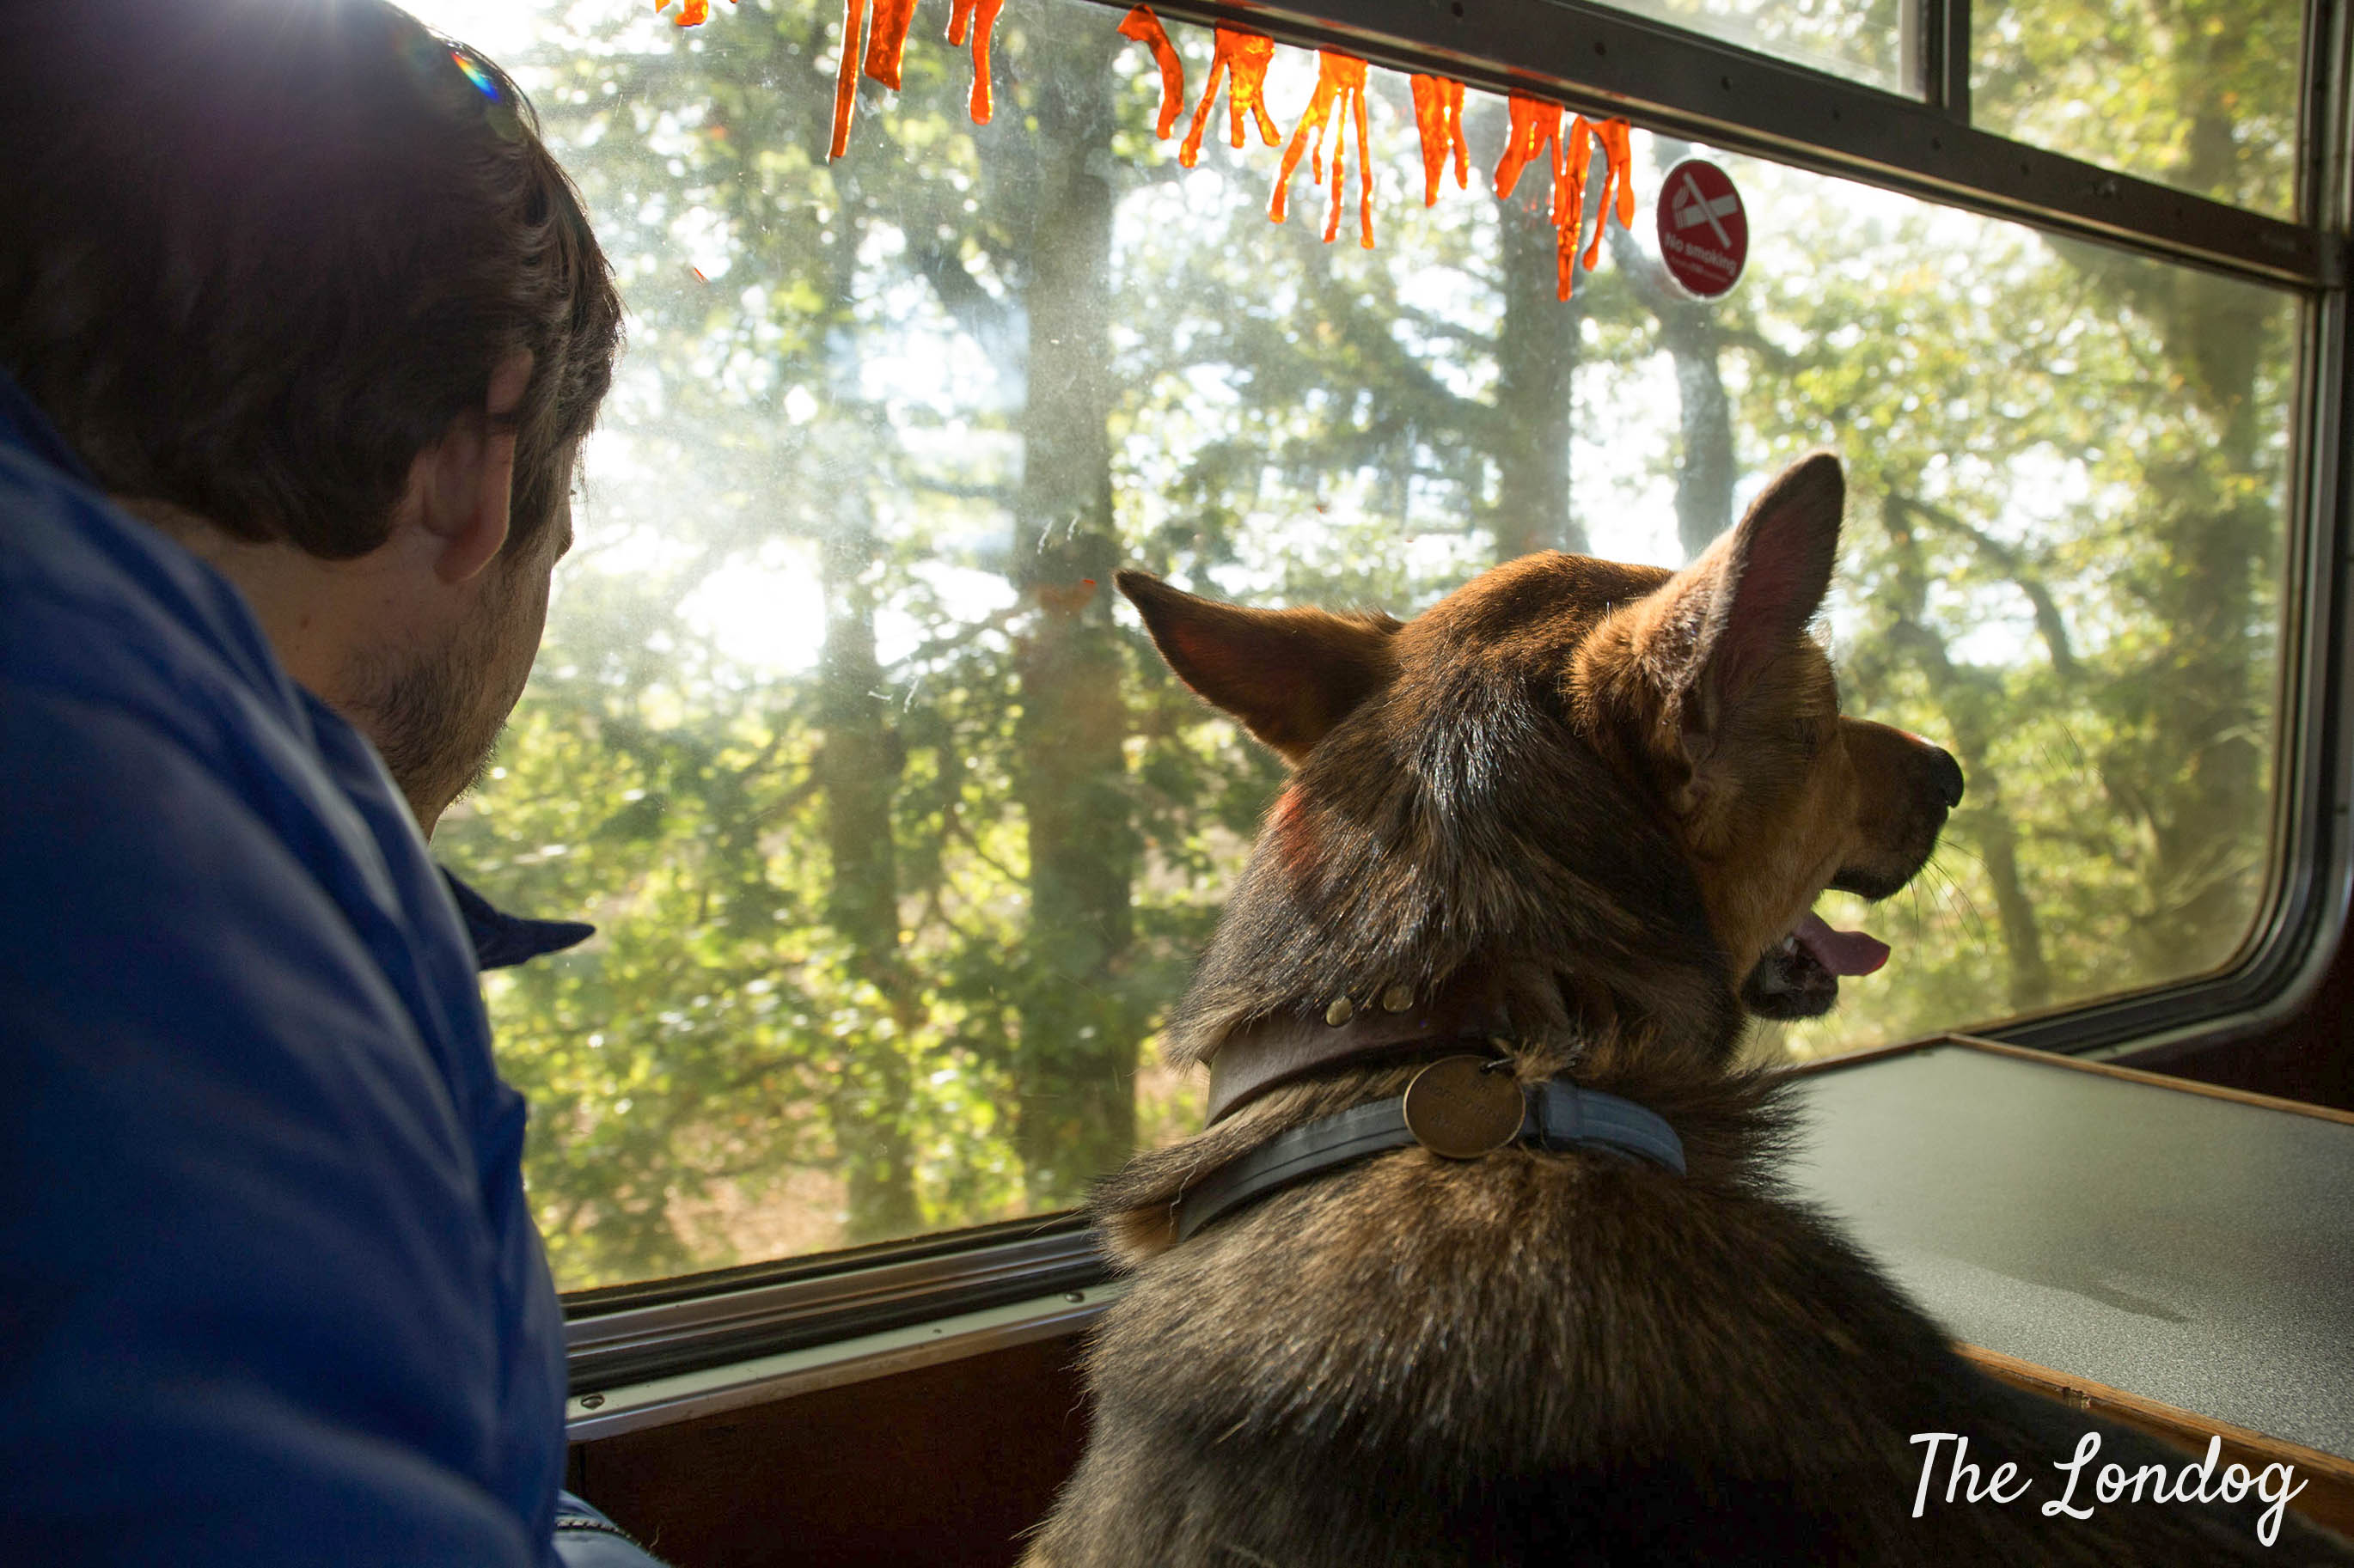 Dog looking out of the window on Epping-Ongar historic railway train